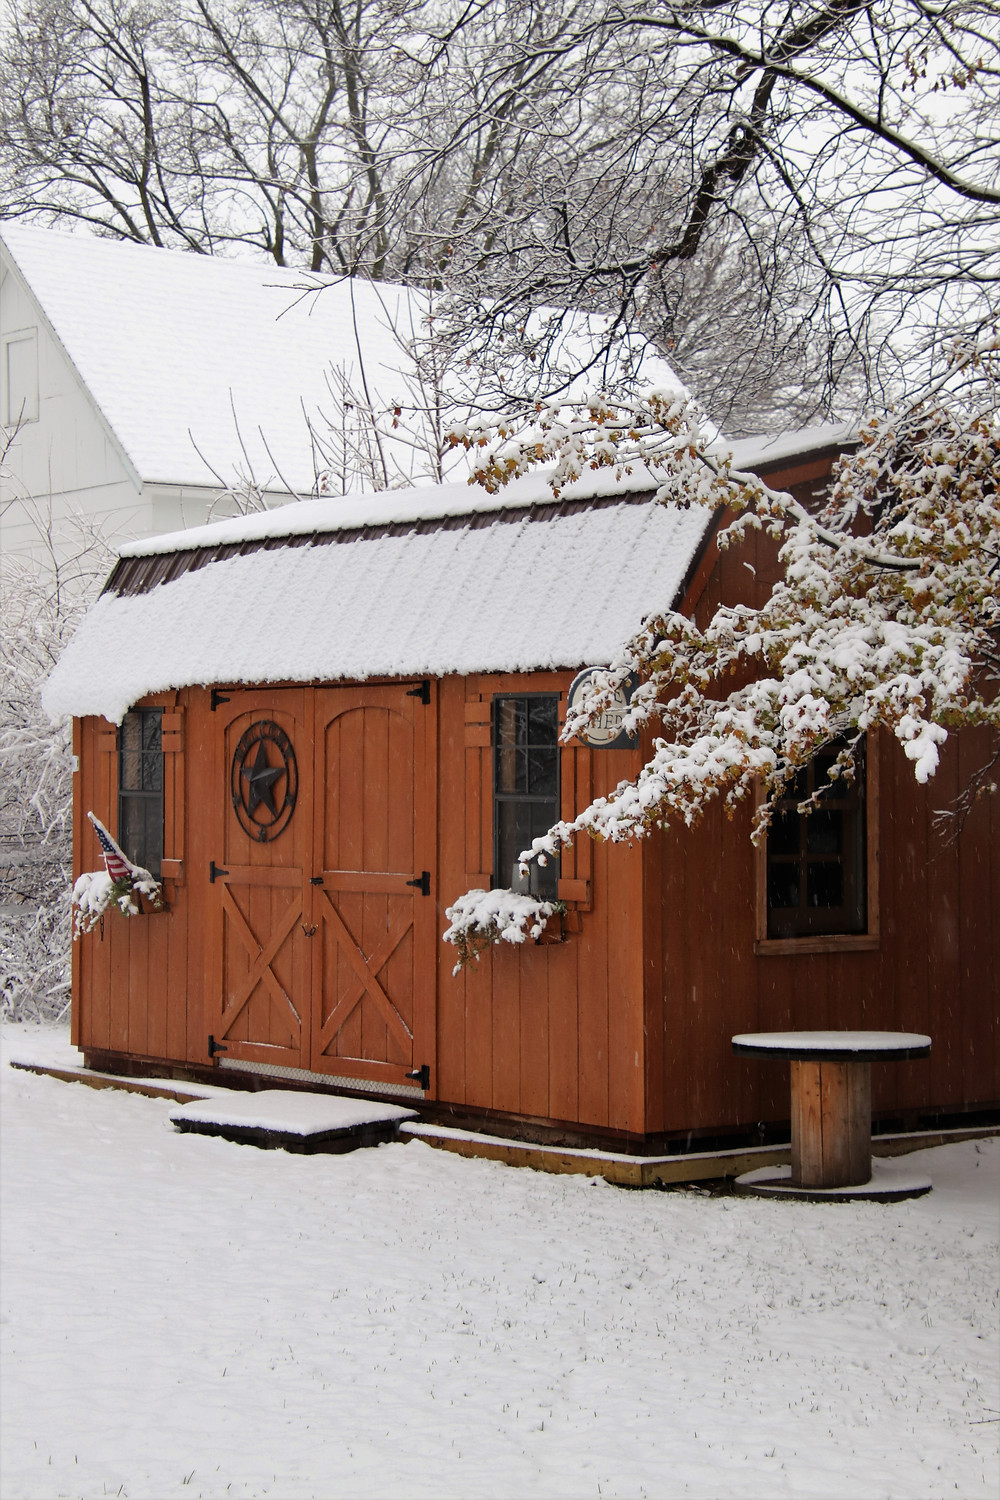 A Sanctuary in the Flakes